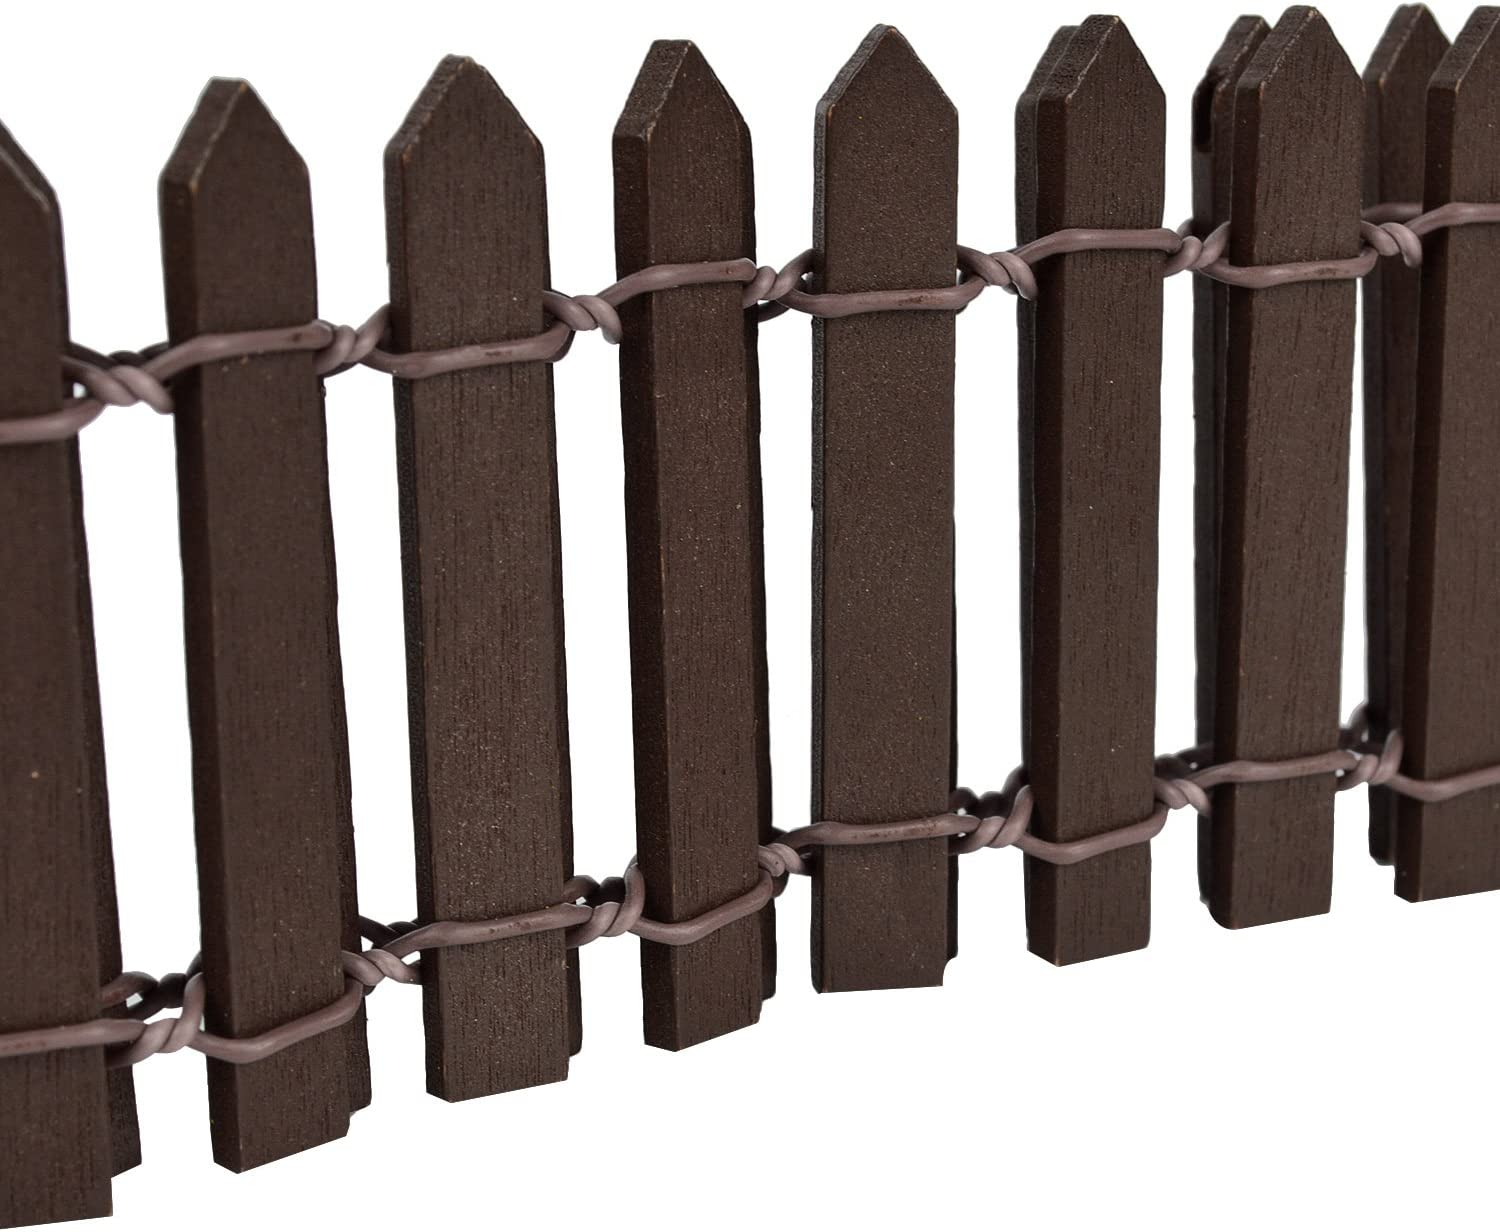 40 Wood Fence for Rose Garden Decoration Framing TaiTian Picket Fence,Garden Fence,Miniature Fairy Fencing